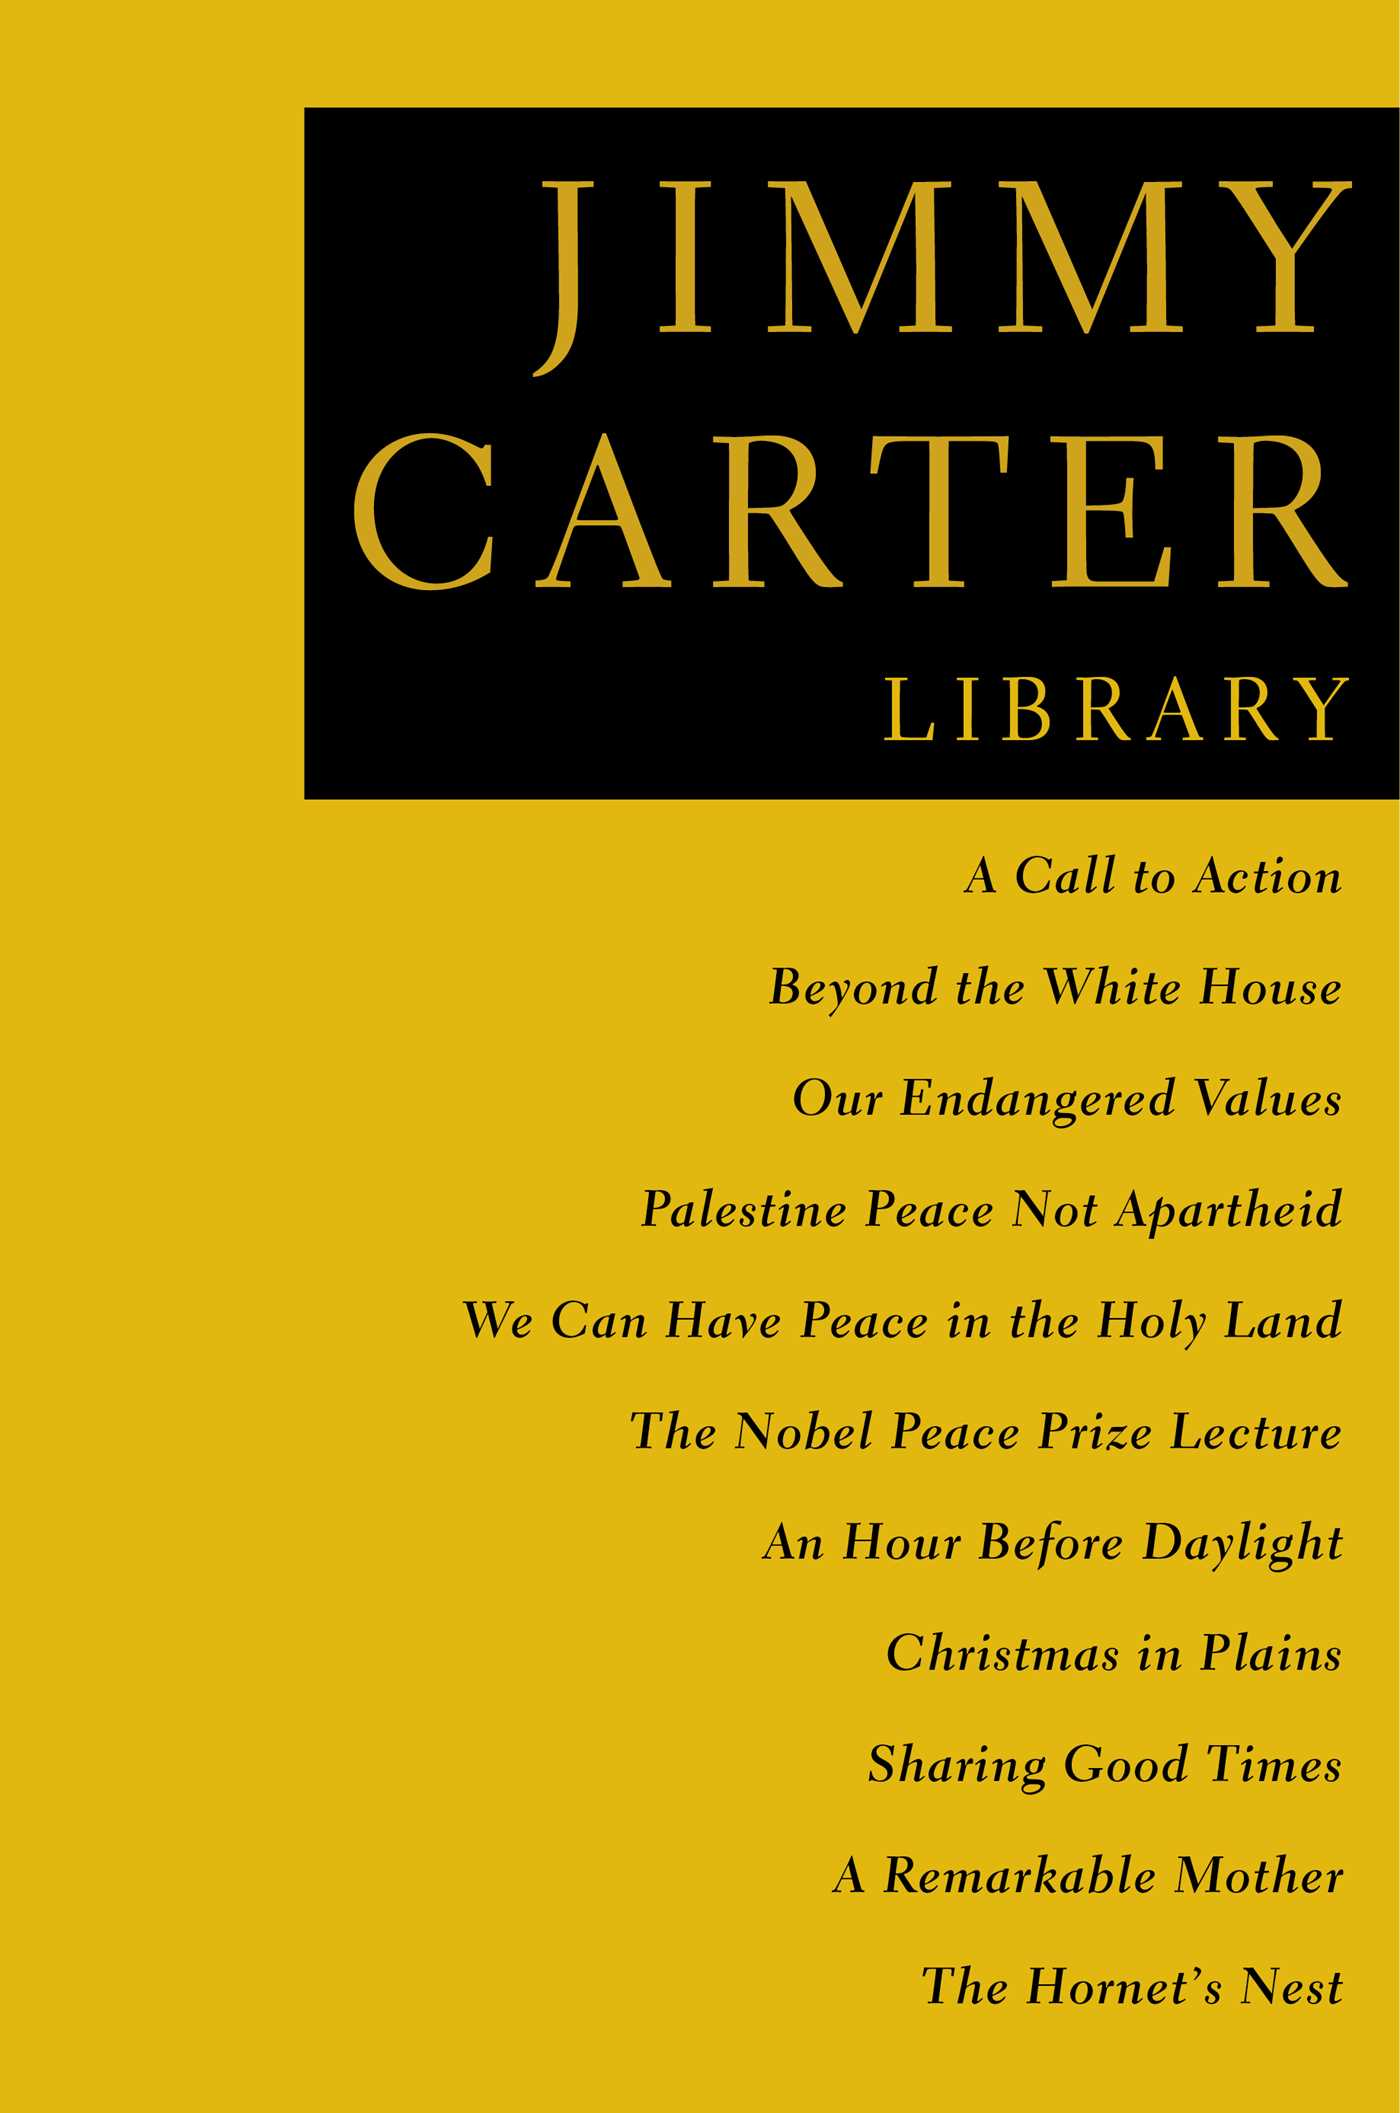 The-jimmy-carter-library-9781476785271_hr